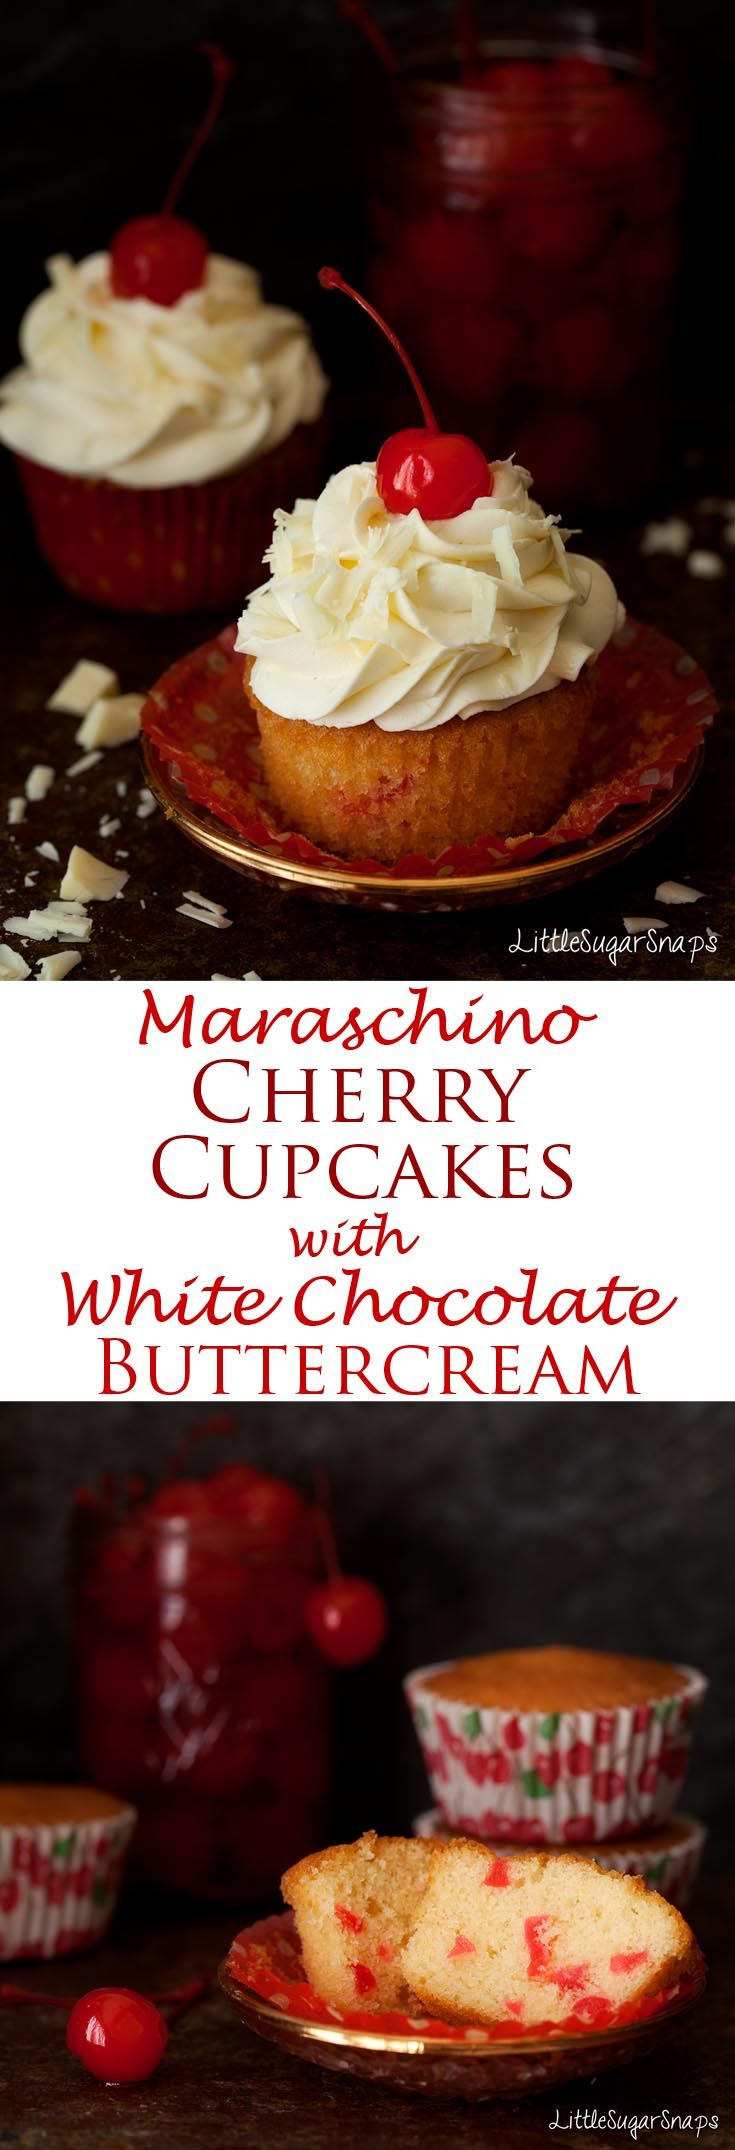 Maraschino Cherry Cupcakes with White Chocolate Buttercream are exceptionally smart but easy to make. Appealing to all ages and perfect for any occasion worth celebrating.